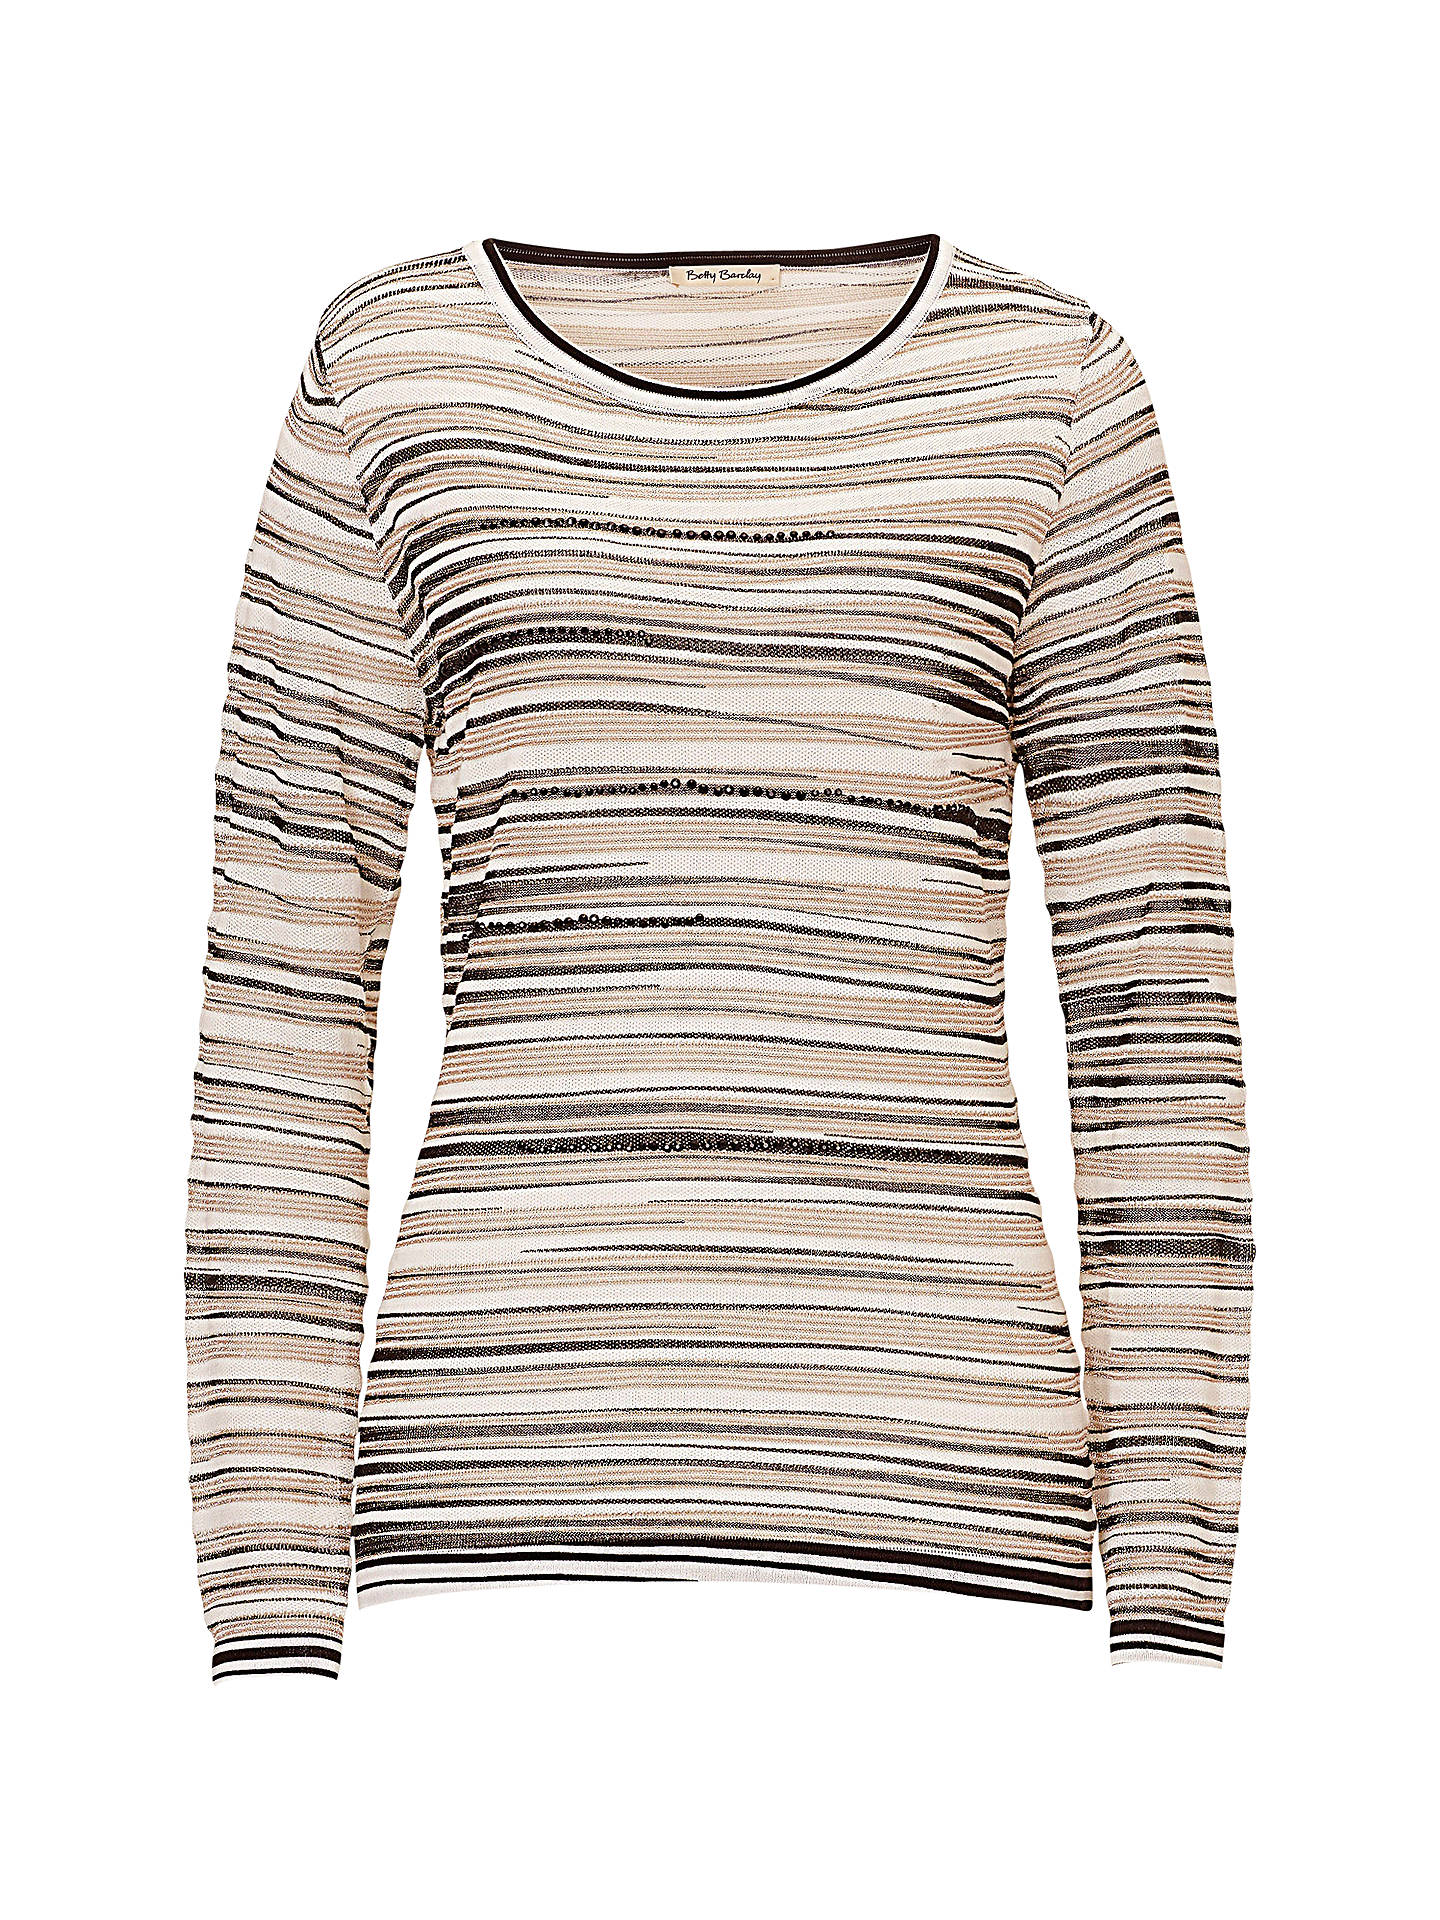 Buy Betty Barclay Metallic Stripe Top, Cream/Black, 10 Online at johnlewis.com